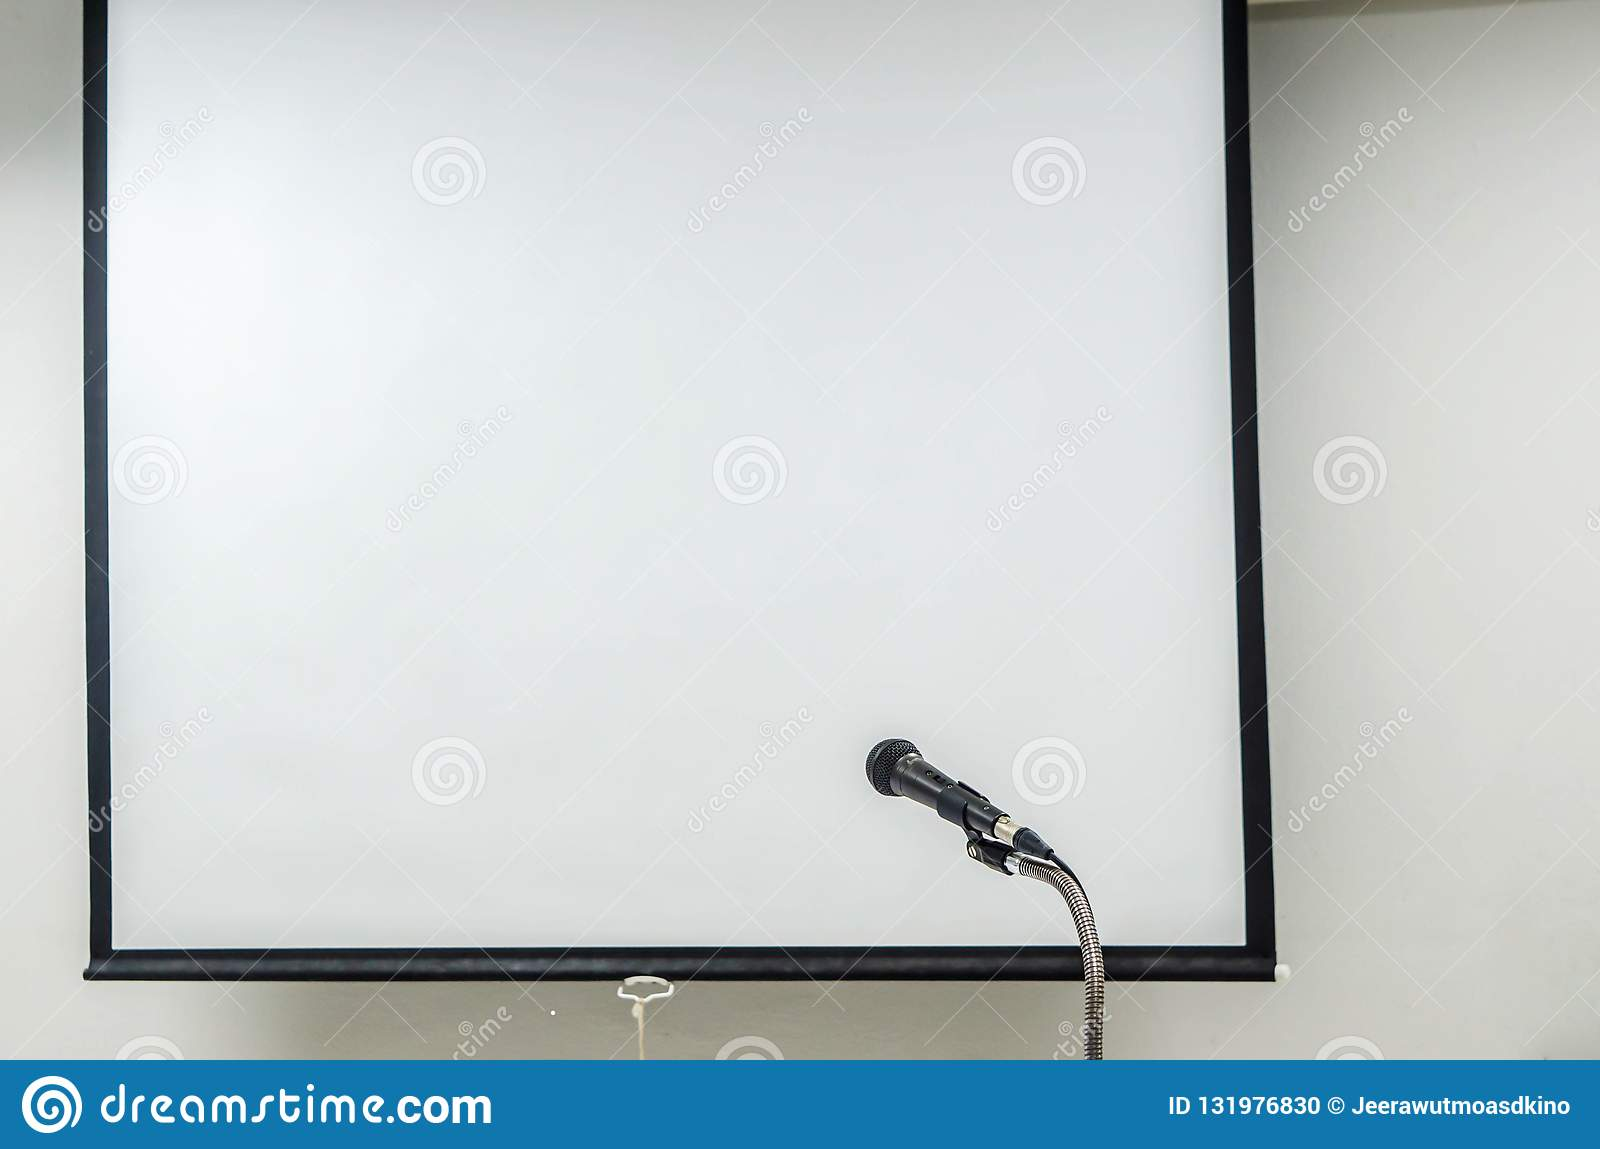 Microphone with projector screen